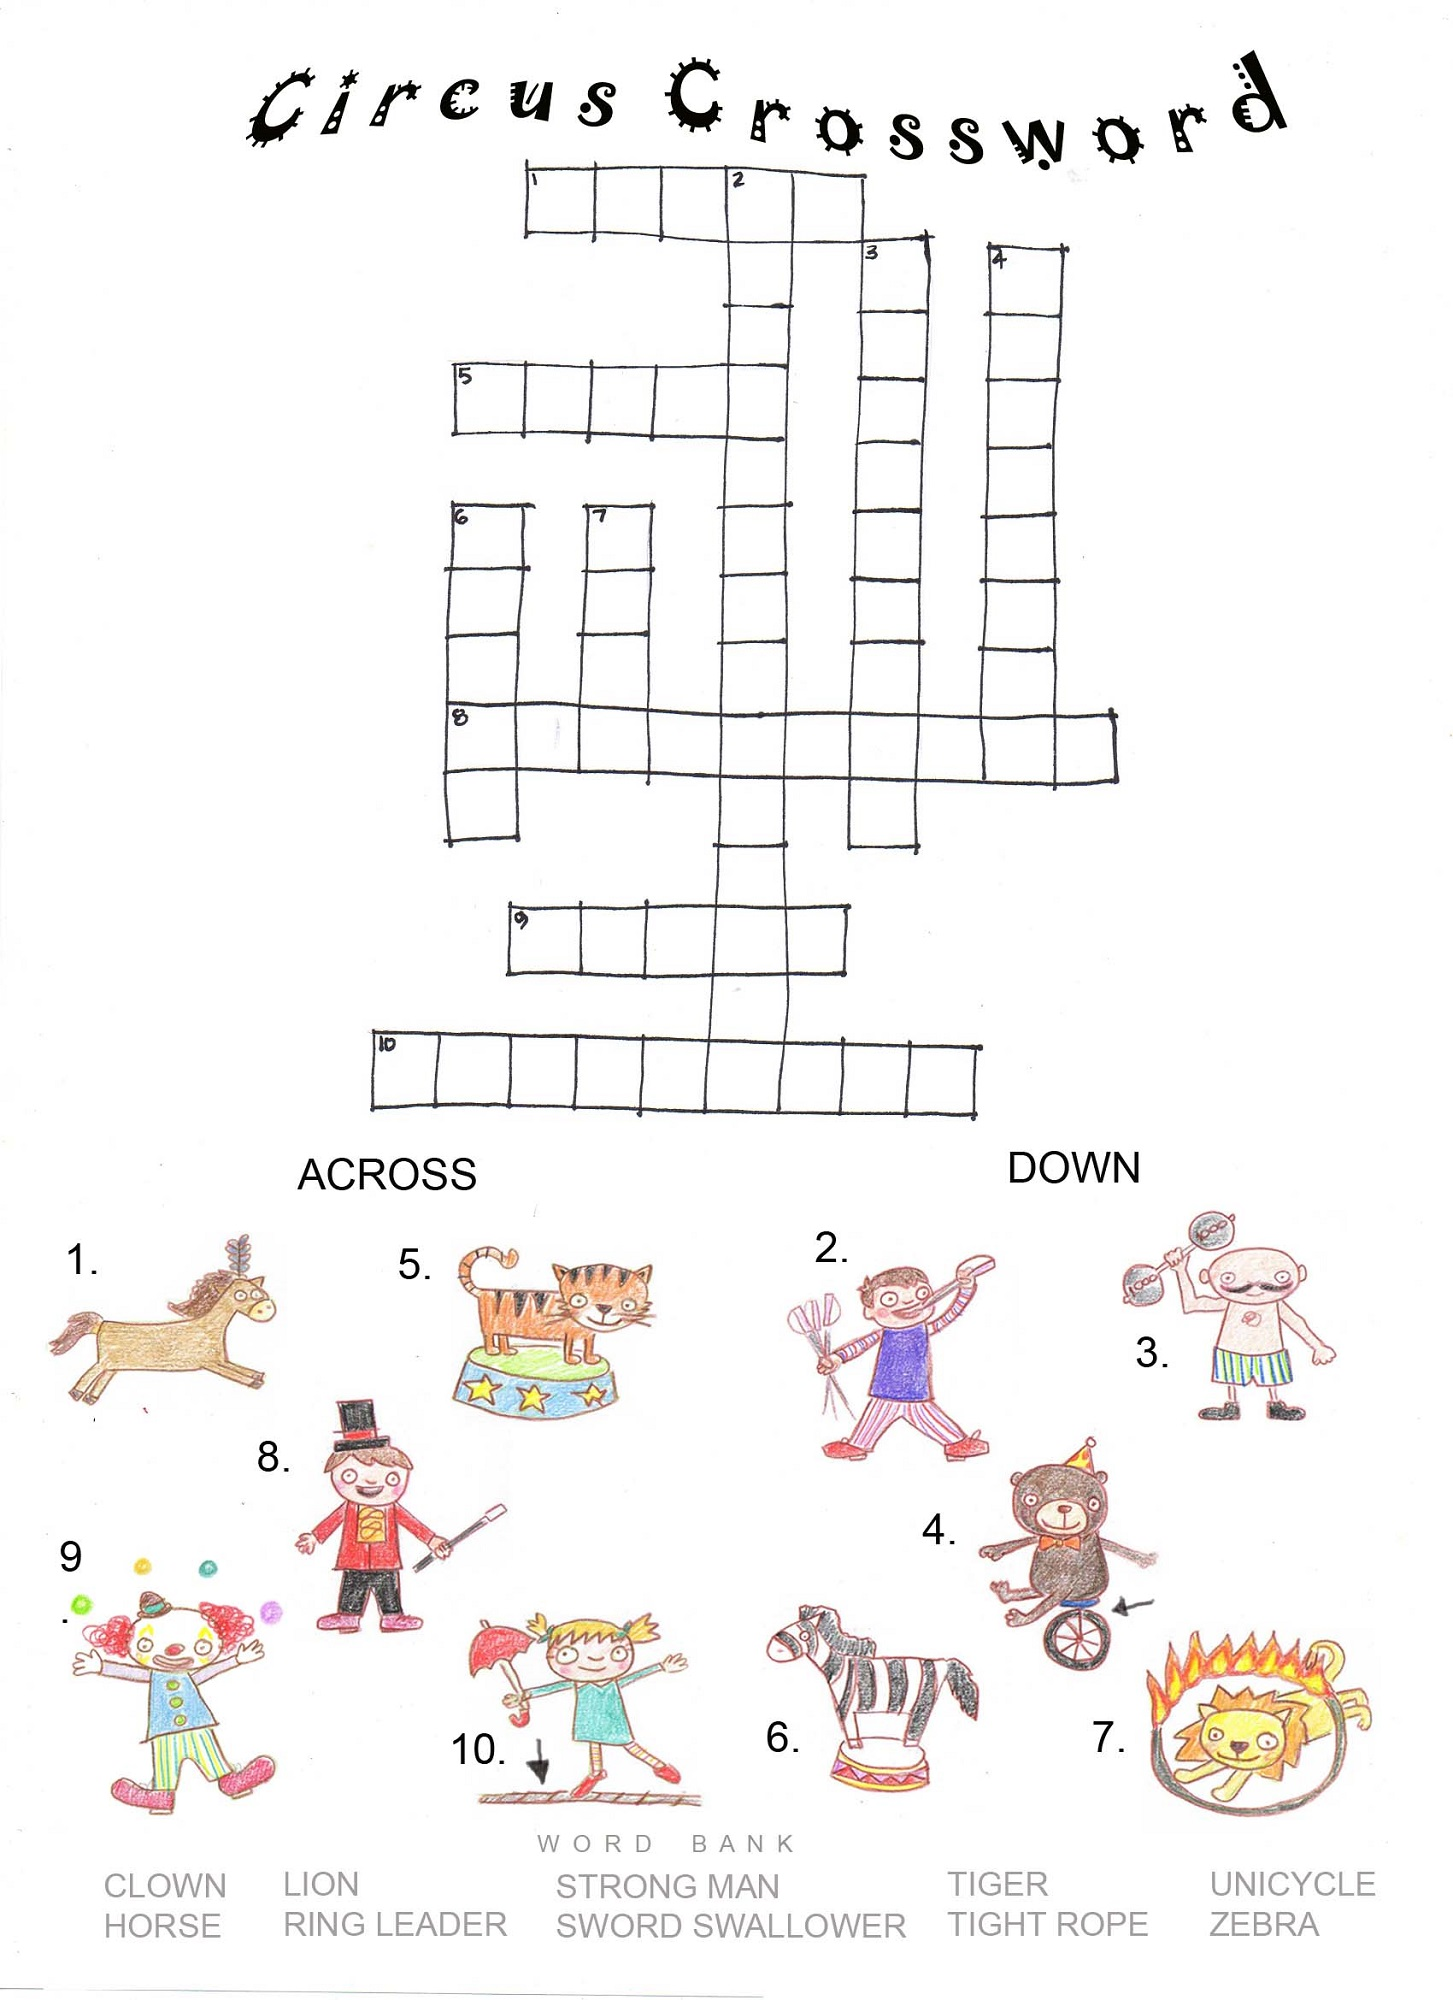 photograph regarding Kids Crossword Puzzles Printable named Printable Crosswords Puzzles Small children Game Shelter